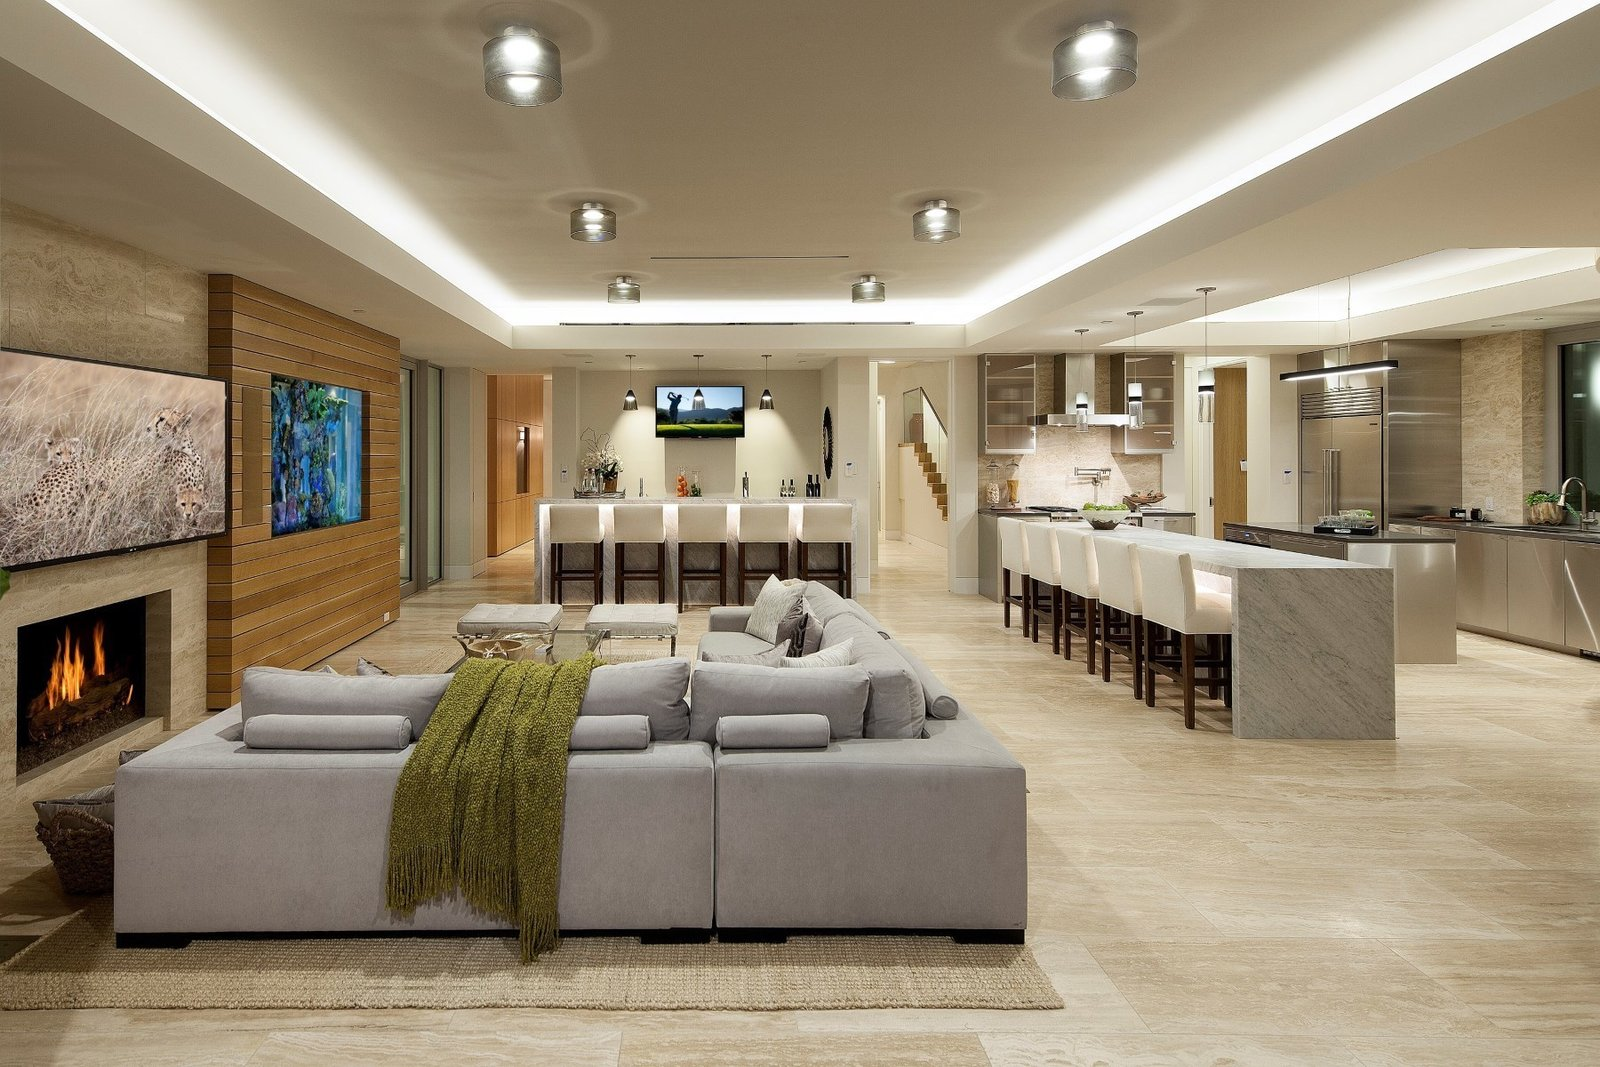 Photo 7 of 9 in Get Smart: Tech-Forward Homes Around the Globe